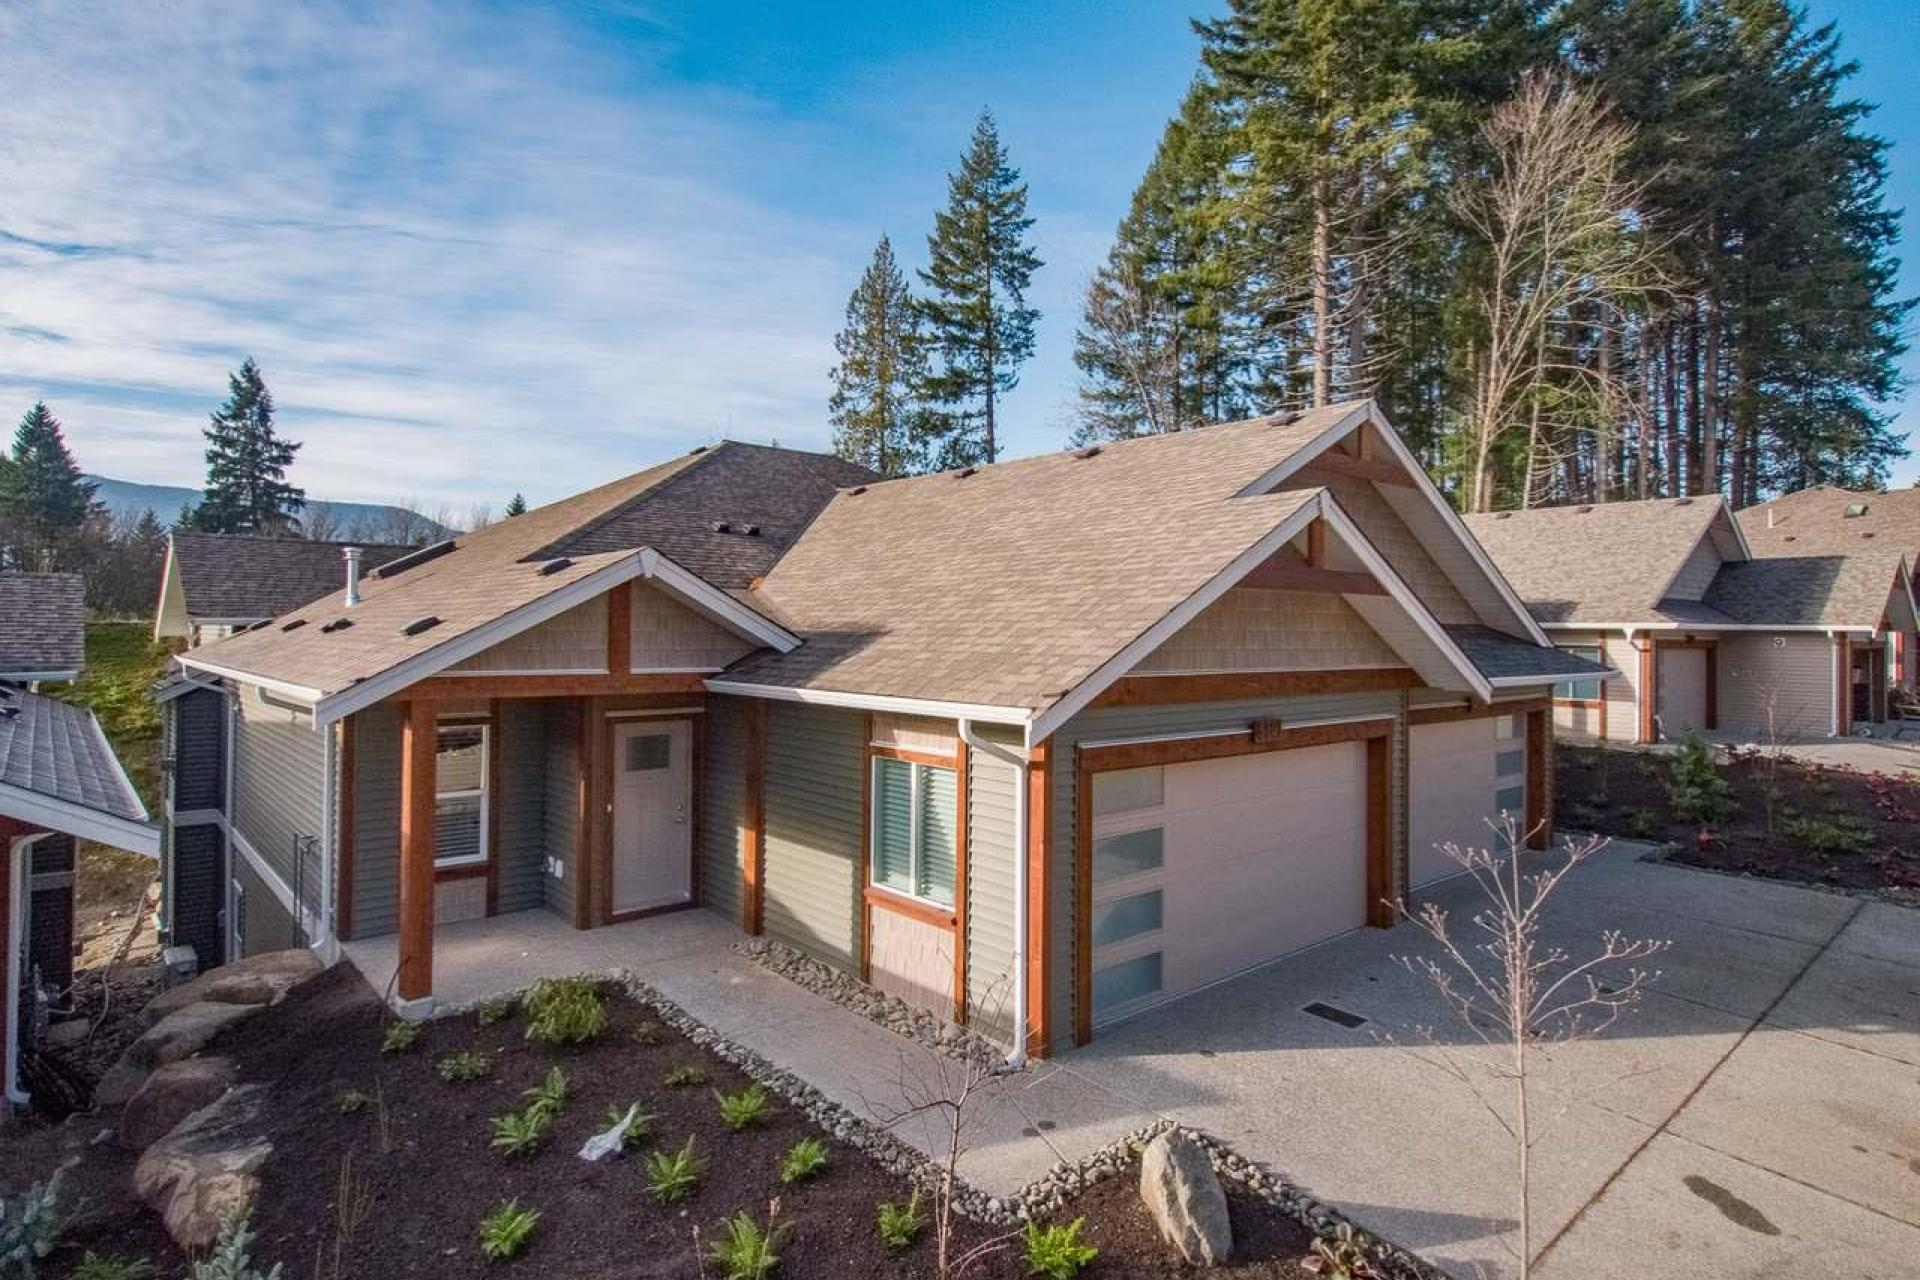 4151 Emerald Woods Place, Diver Lake, Nanaimo